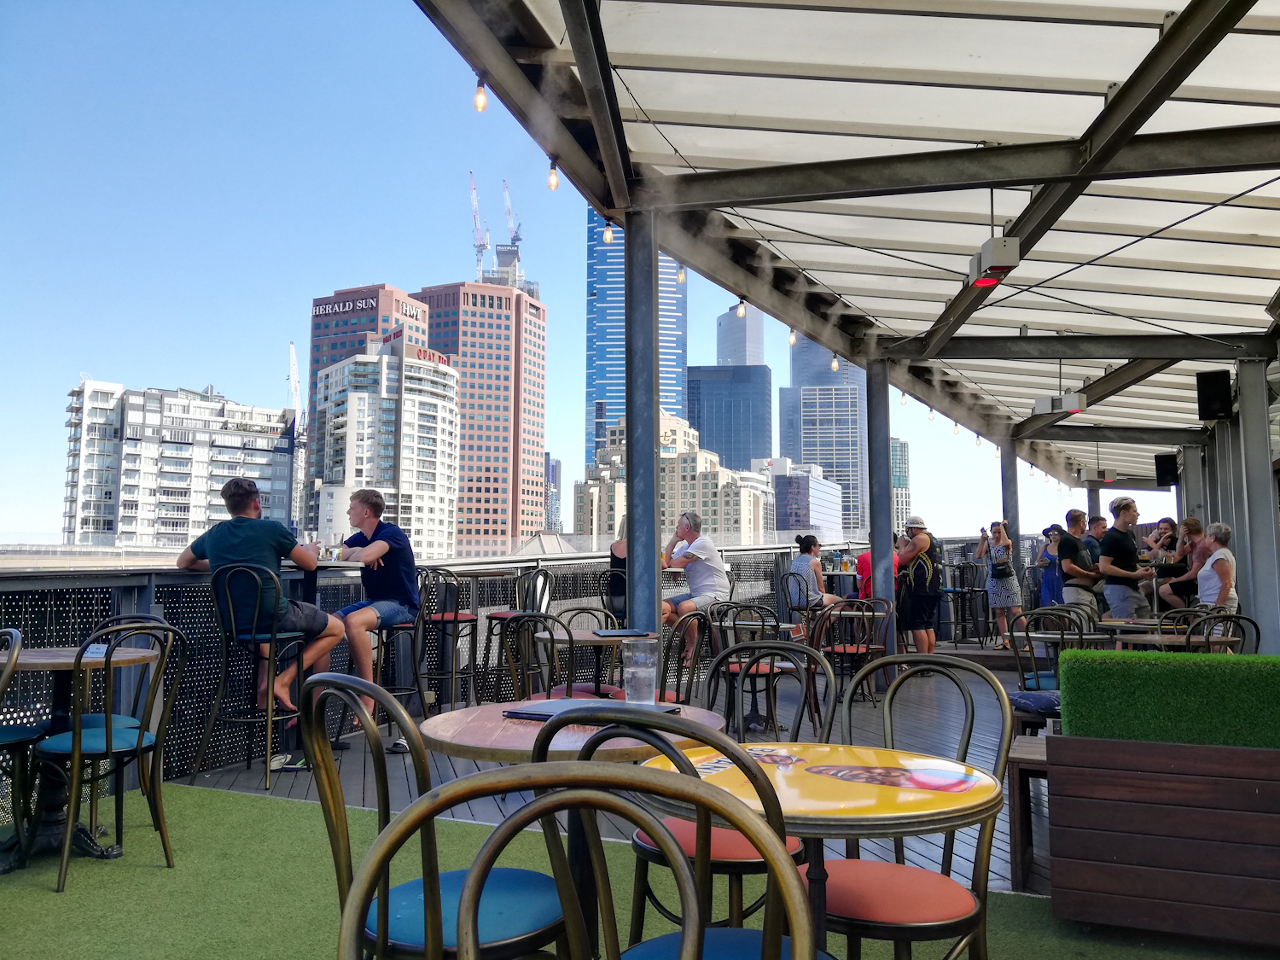 Discover the best rooftop bars in Melbourne, Australia. Read this article and discover the baes with the best views of Melbourne!